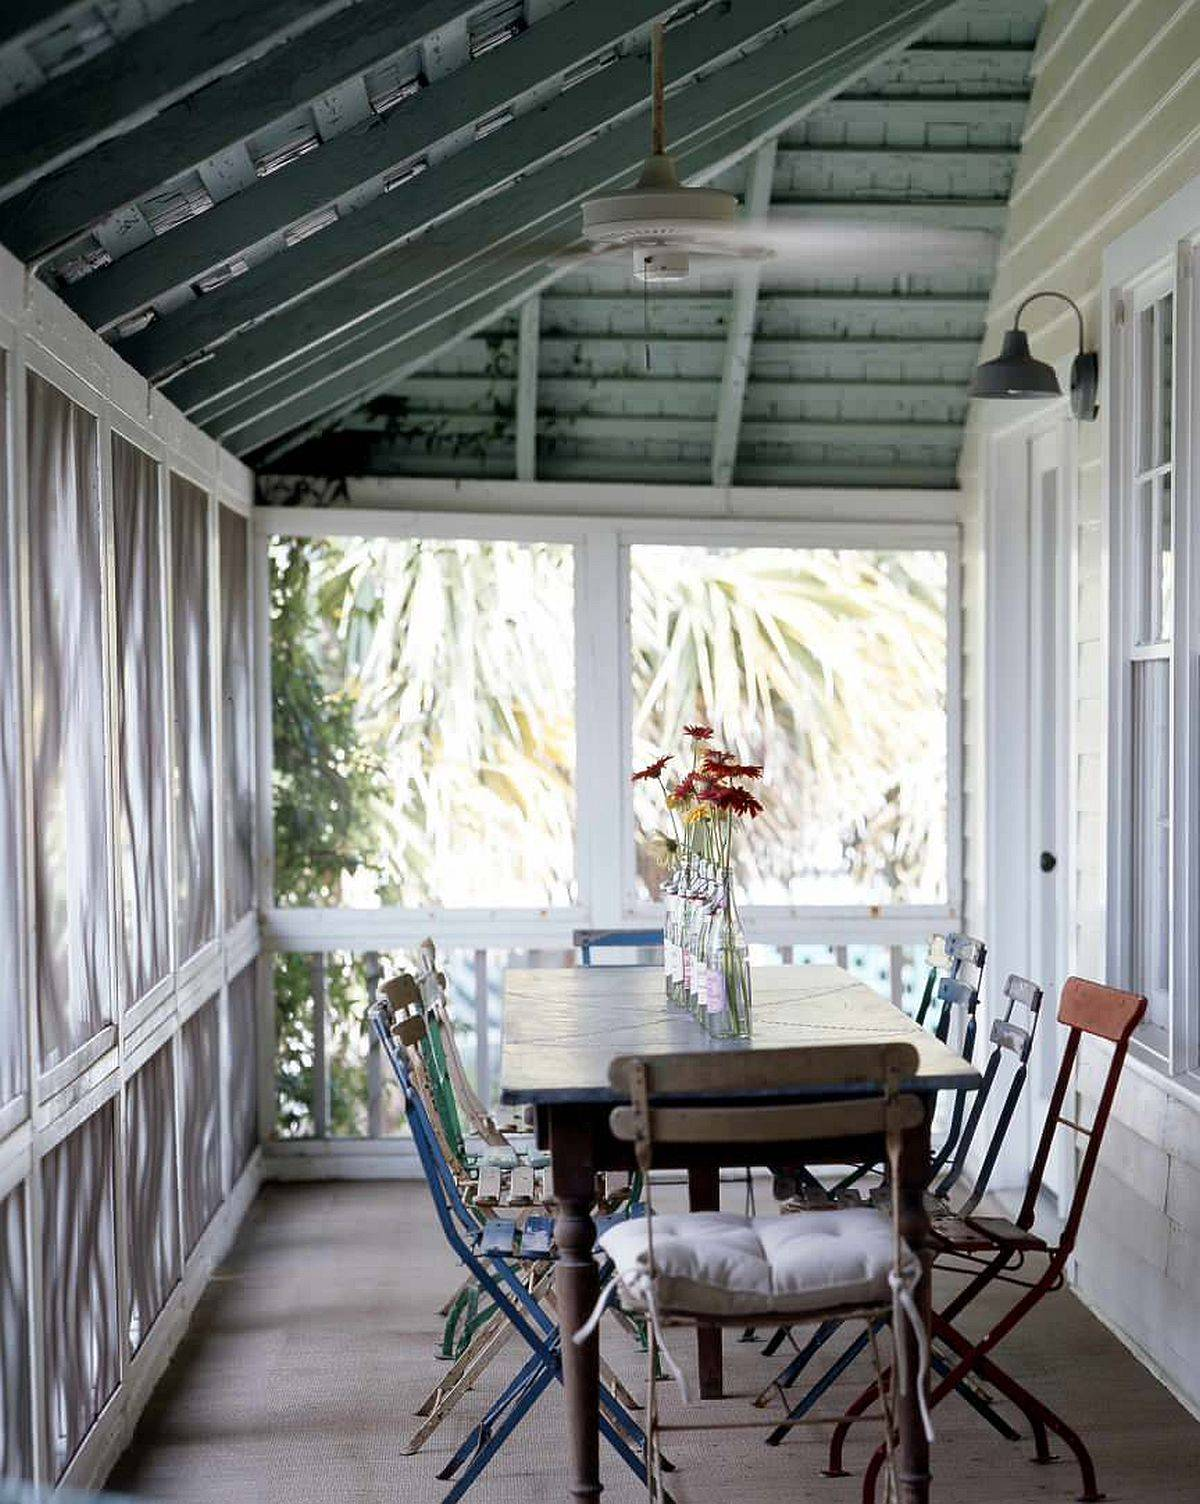 Turn-the-relaxing-shabby-chic-porch-into-a-lovely-outdoor-dining-space-83835